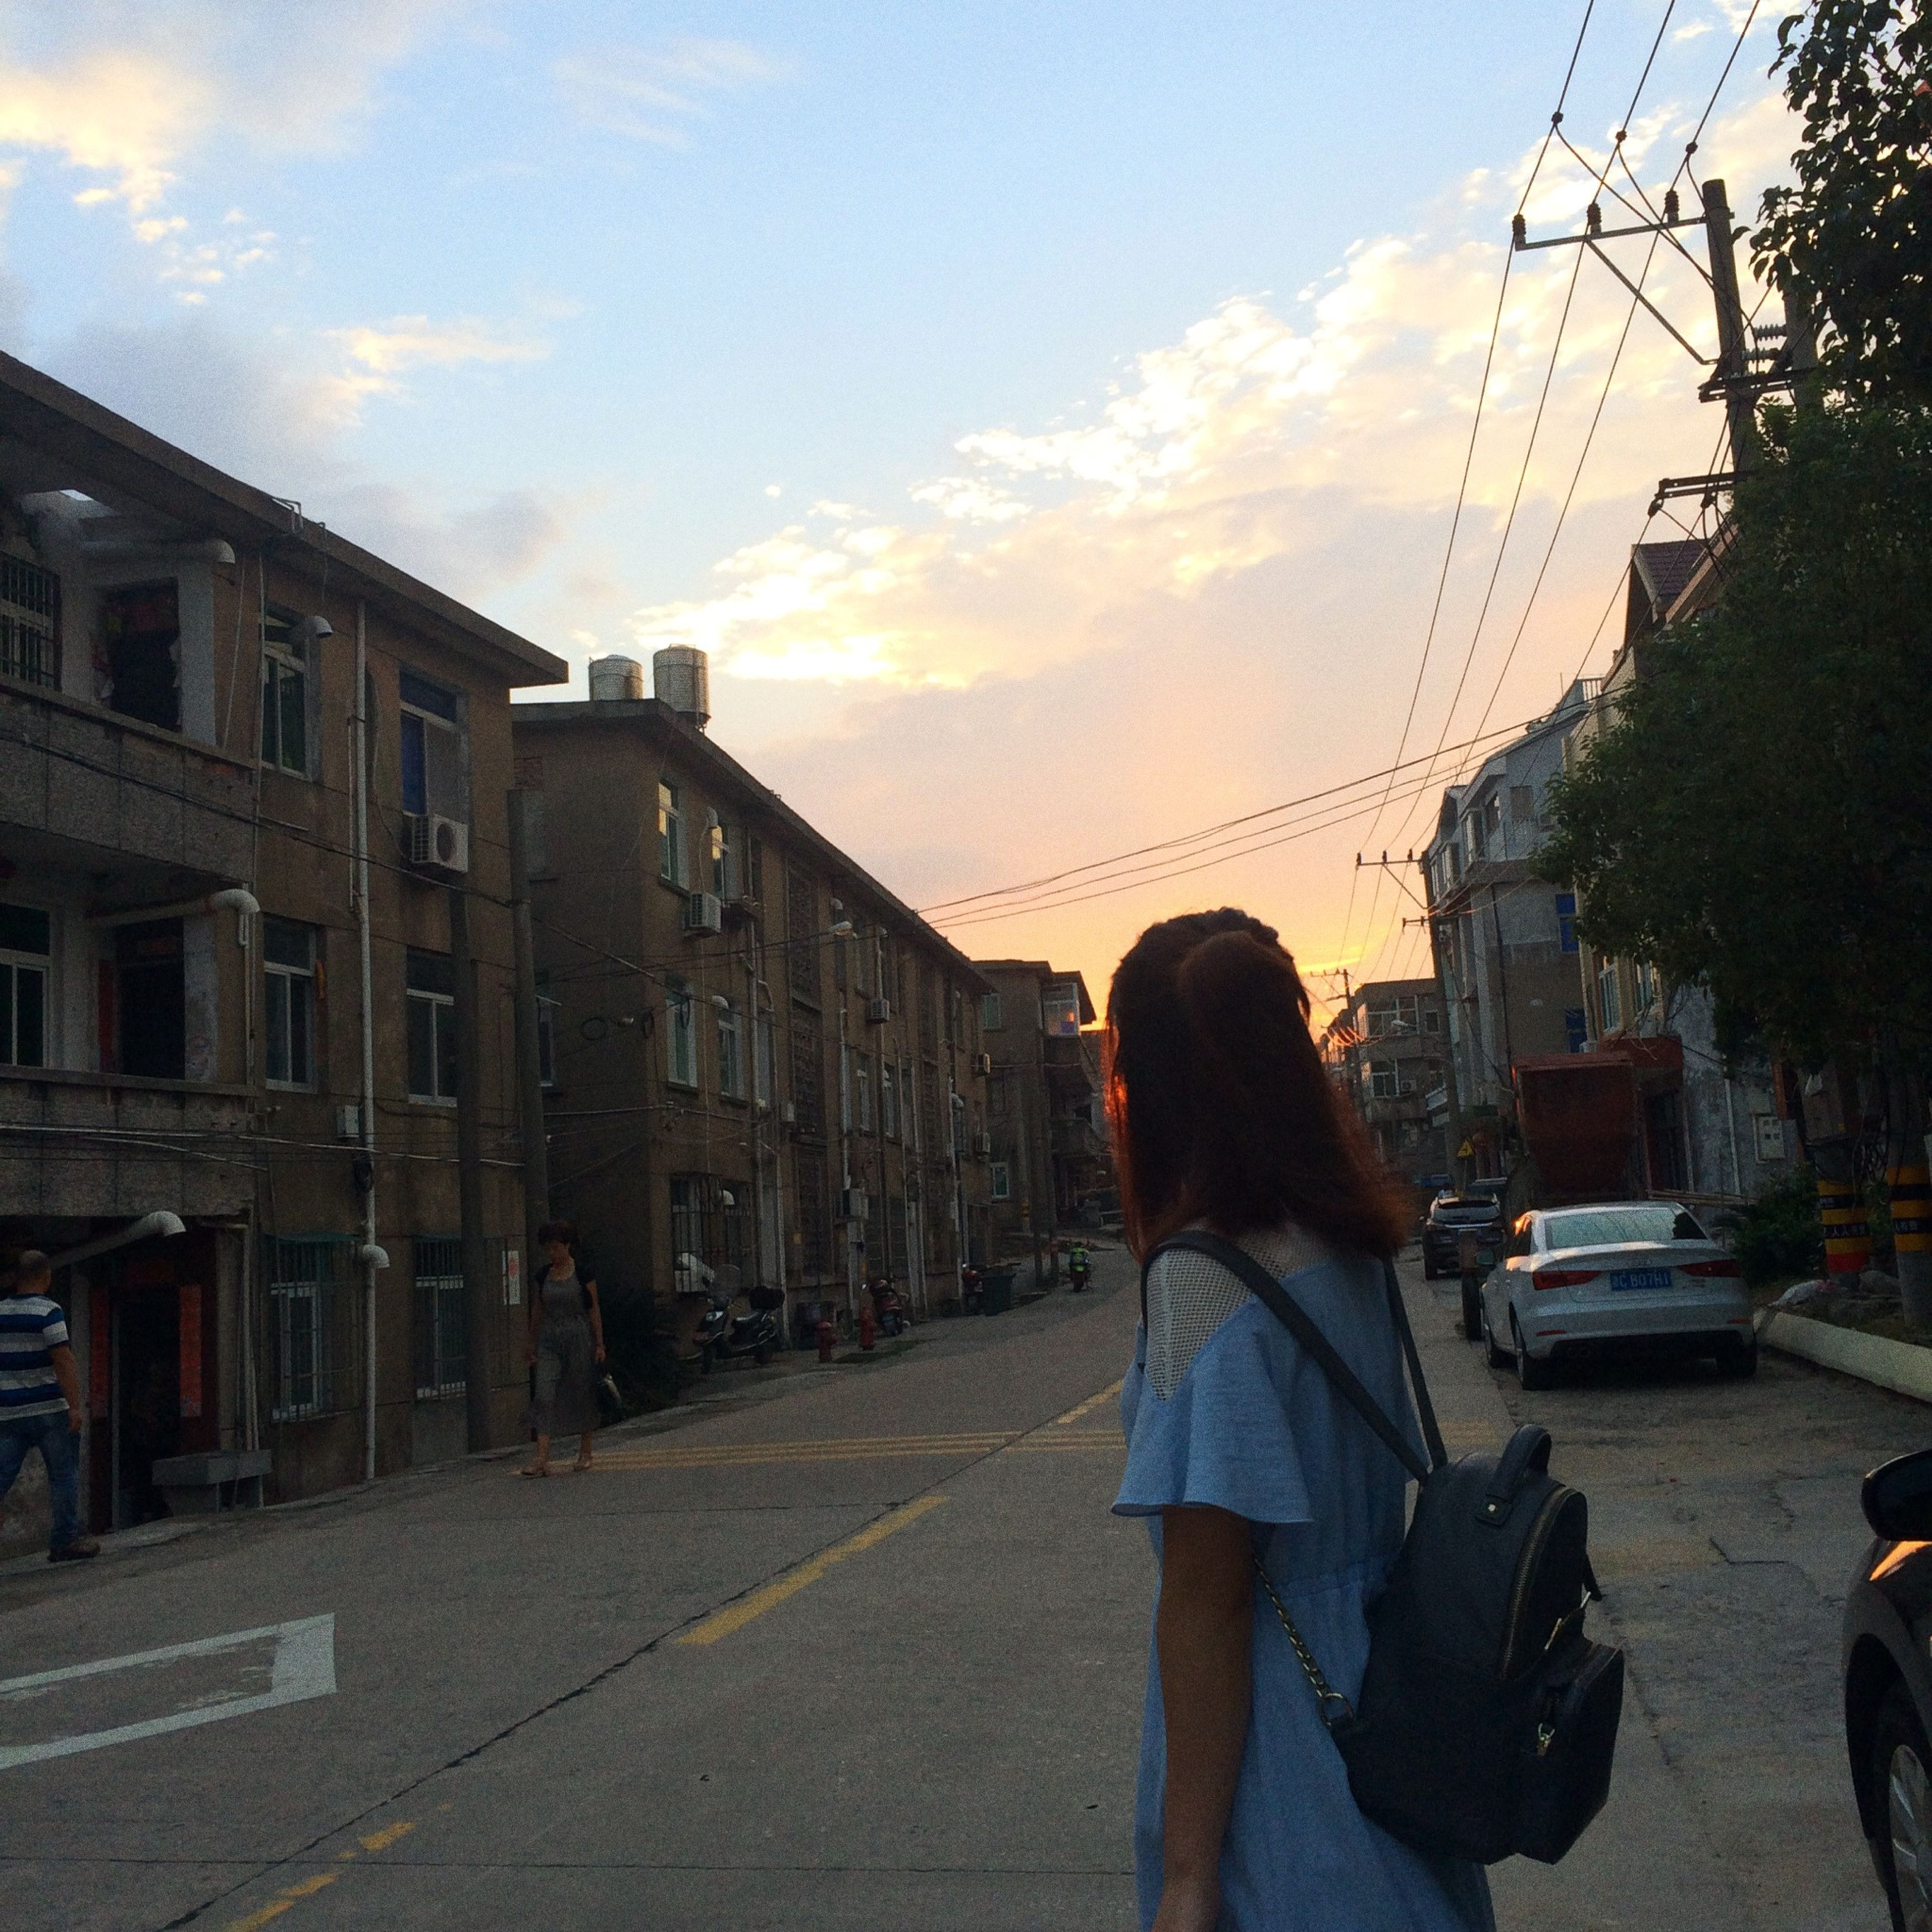 architecture, built structure, building exterior, sunset, sky, street, rear view, transportation, city, cloud, person, city life, outdoors, cloud - sky, the way forward, diminishing perspective, vanishing point